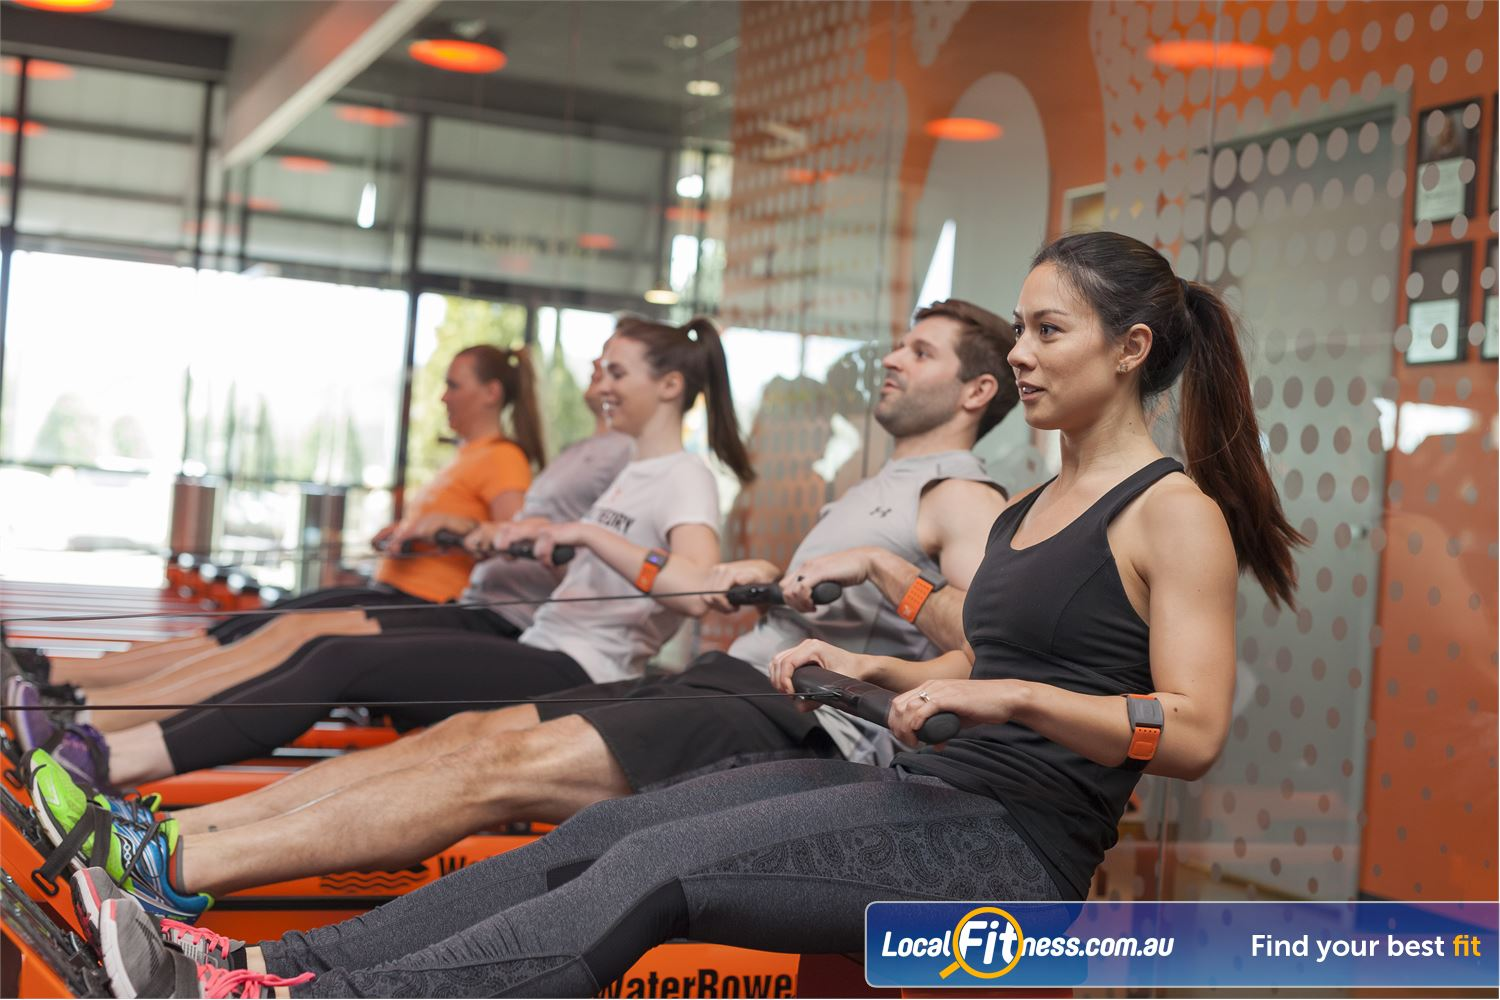 Orangetheory Fitness Hawthorn Orangetheory Hawthorn is backed by the science of Excess Post-Exercise Oxygen Consumption (EPOC).